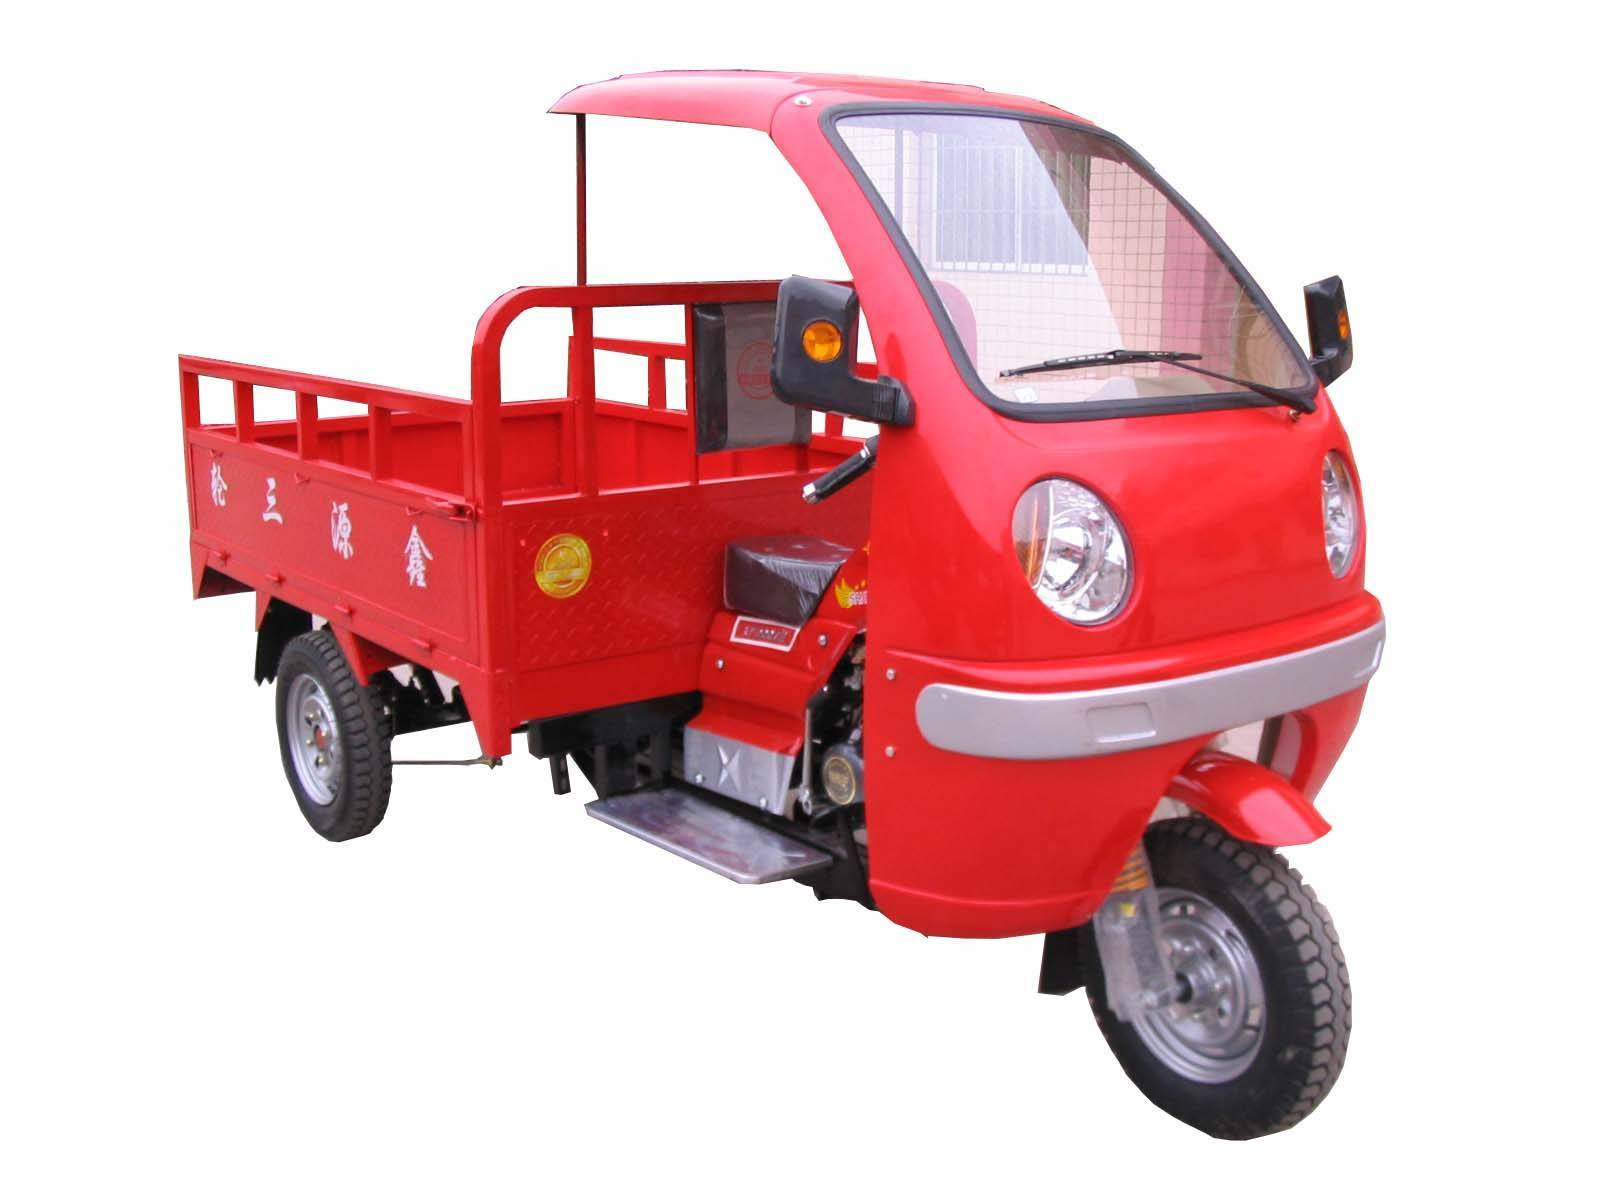 cabin tricycle 150cc-200cc